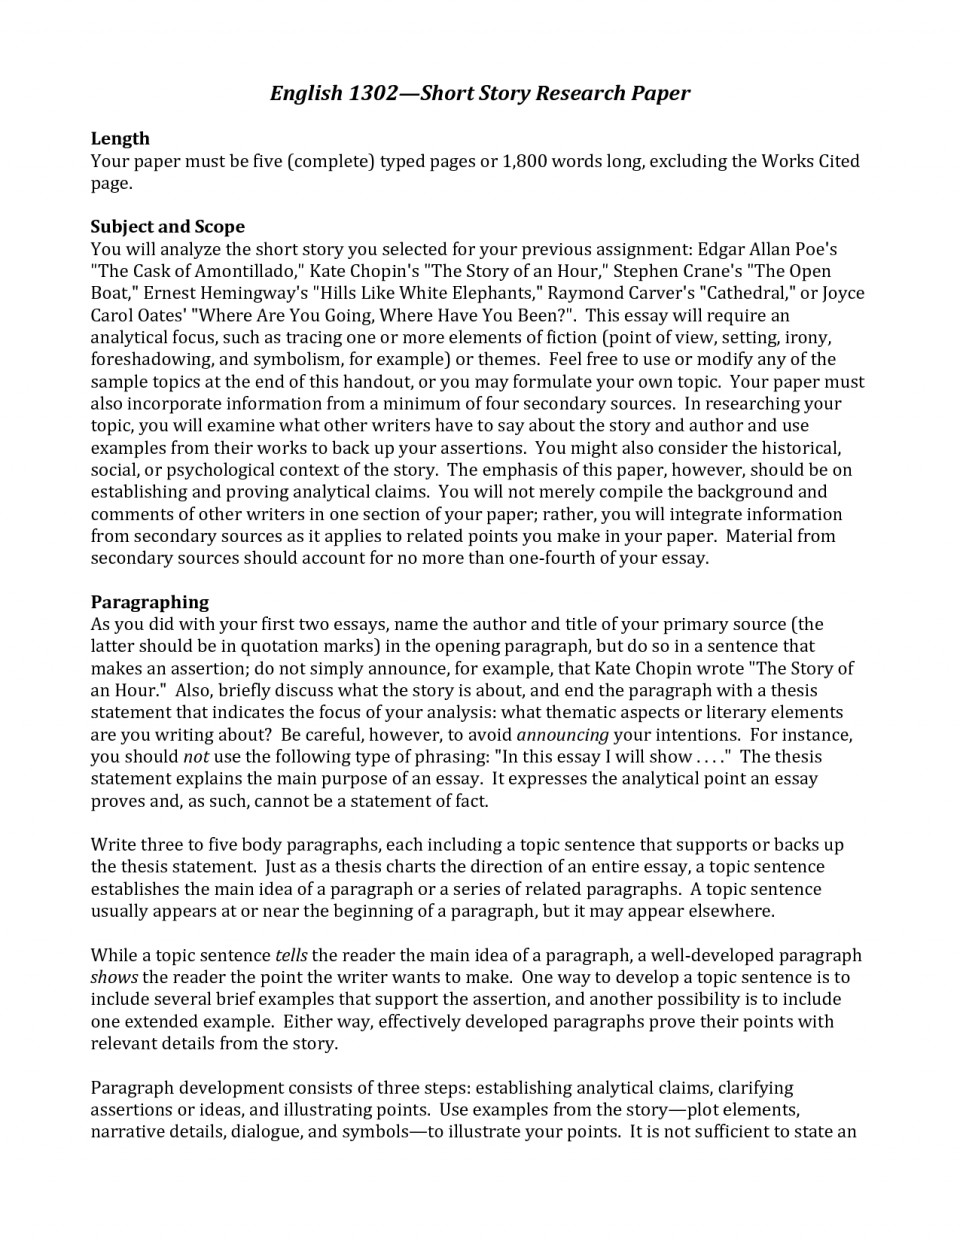 002 Ideas For Research Fascinating Paper Papers In Computer Science Middle School Topic High 960